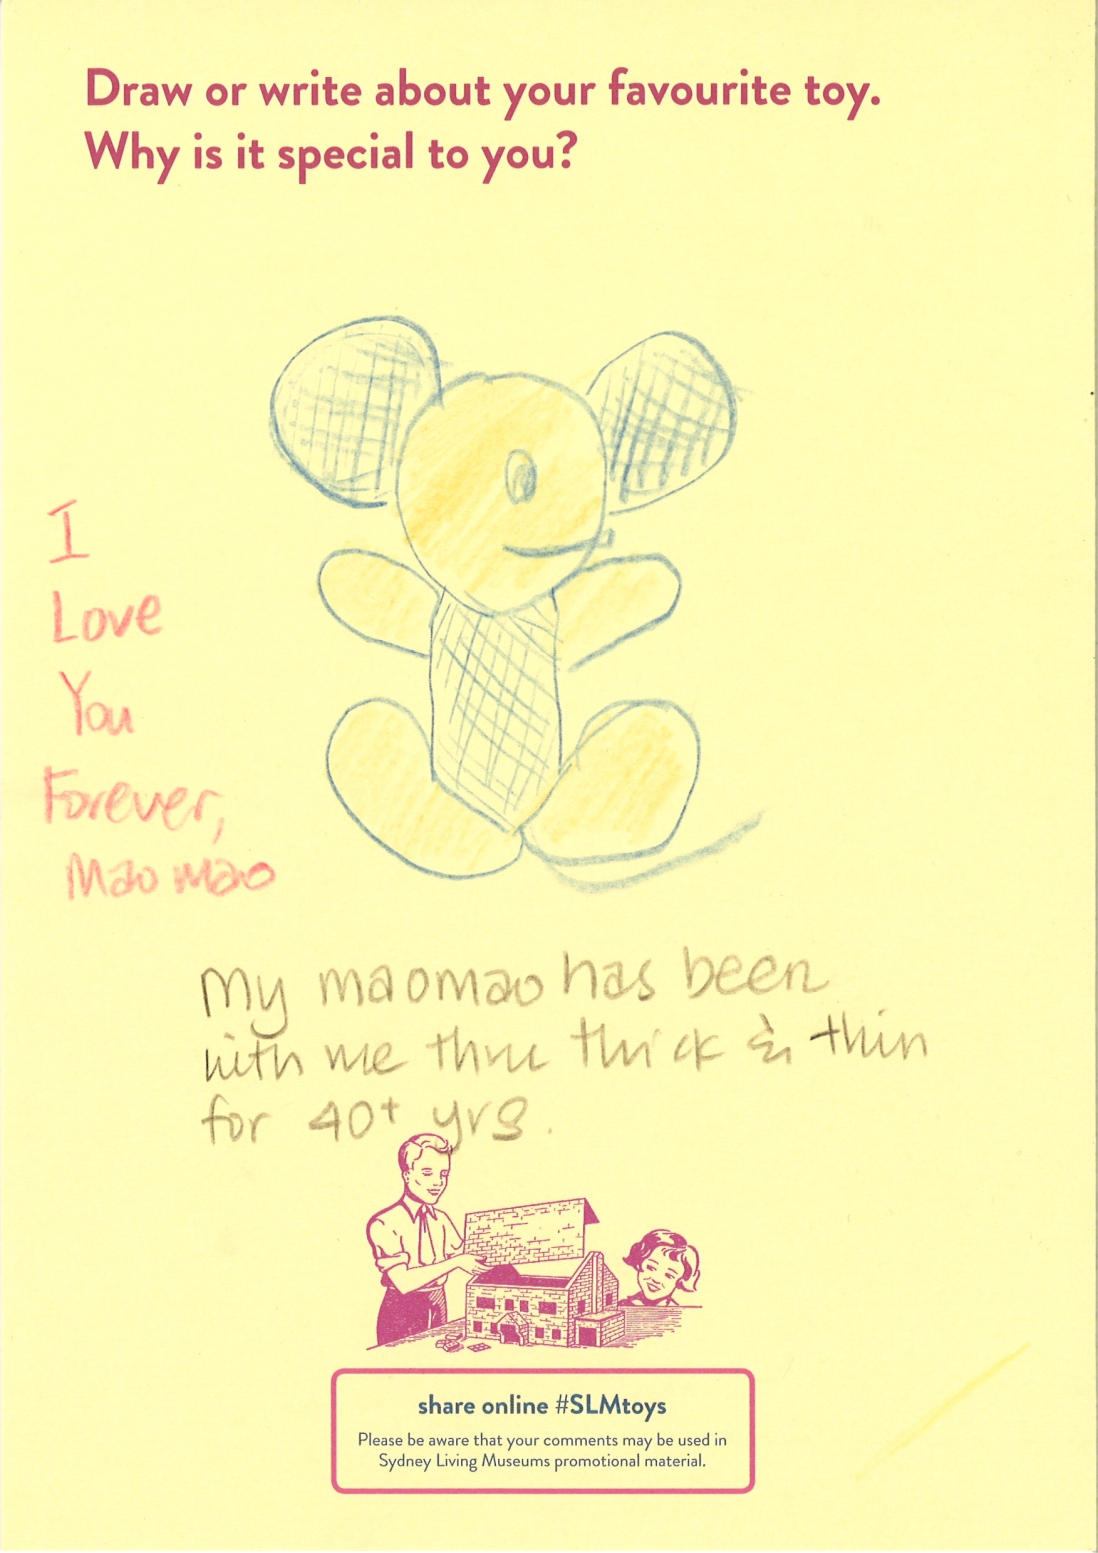 A drawing of a blue and yellow mouse